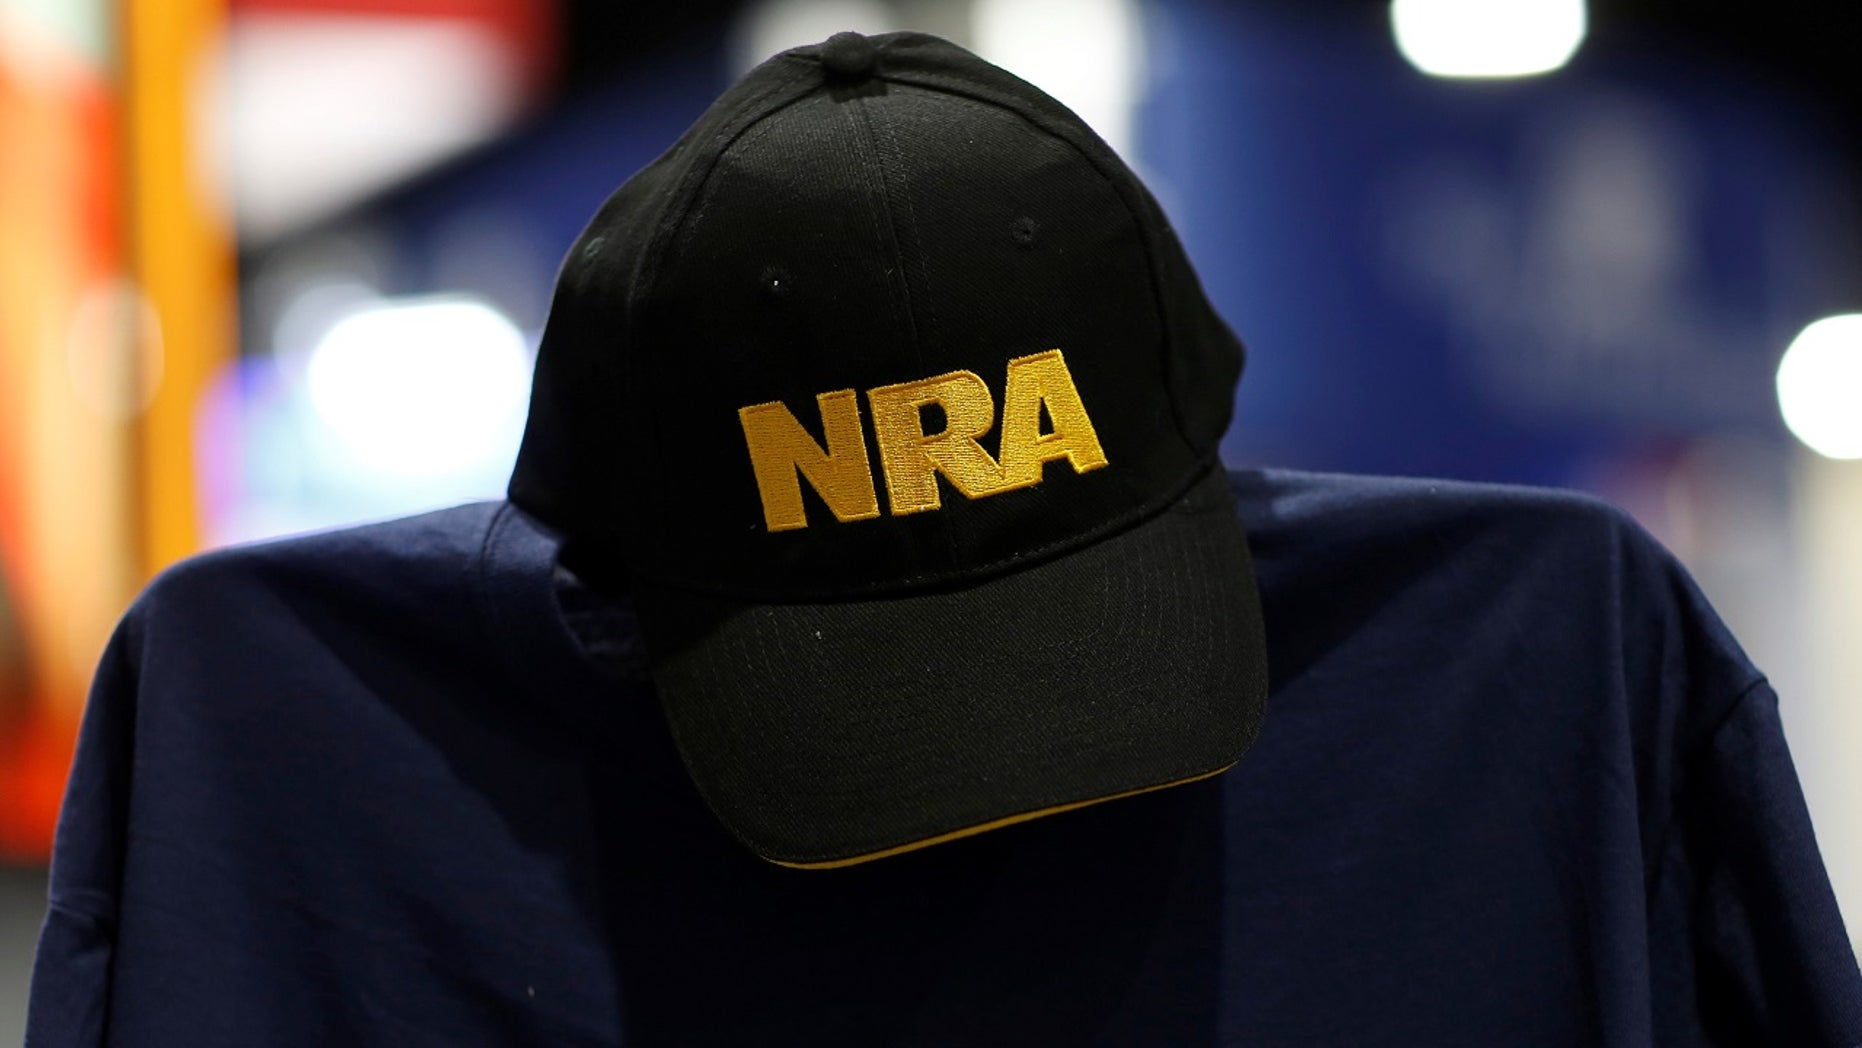 FILE -- A cap and shirt are displayed at the booth for the National Rifle Association (NRA) at the Conservative Political Action Conference (CPAC) at National Harbor, Maryland, U.S., February 23, 2018.